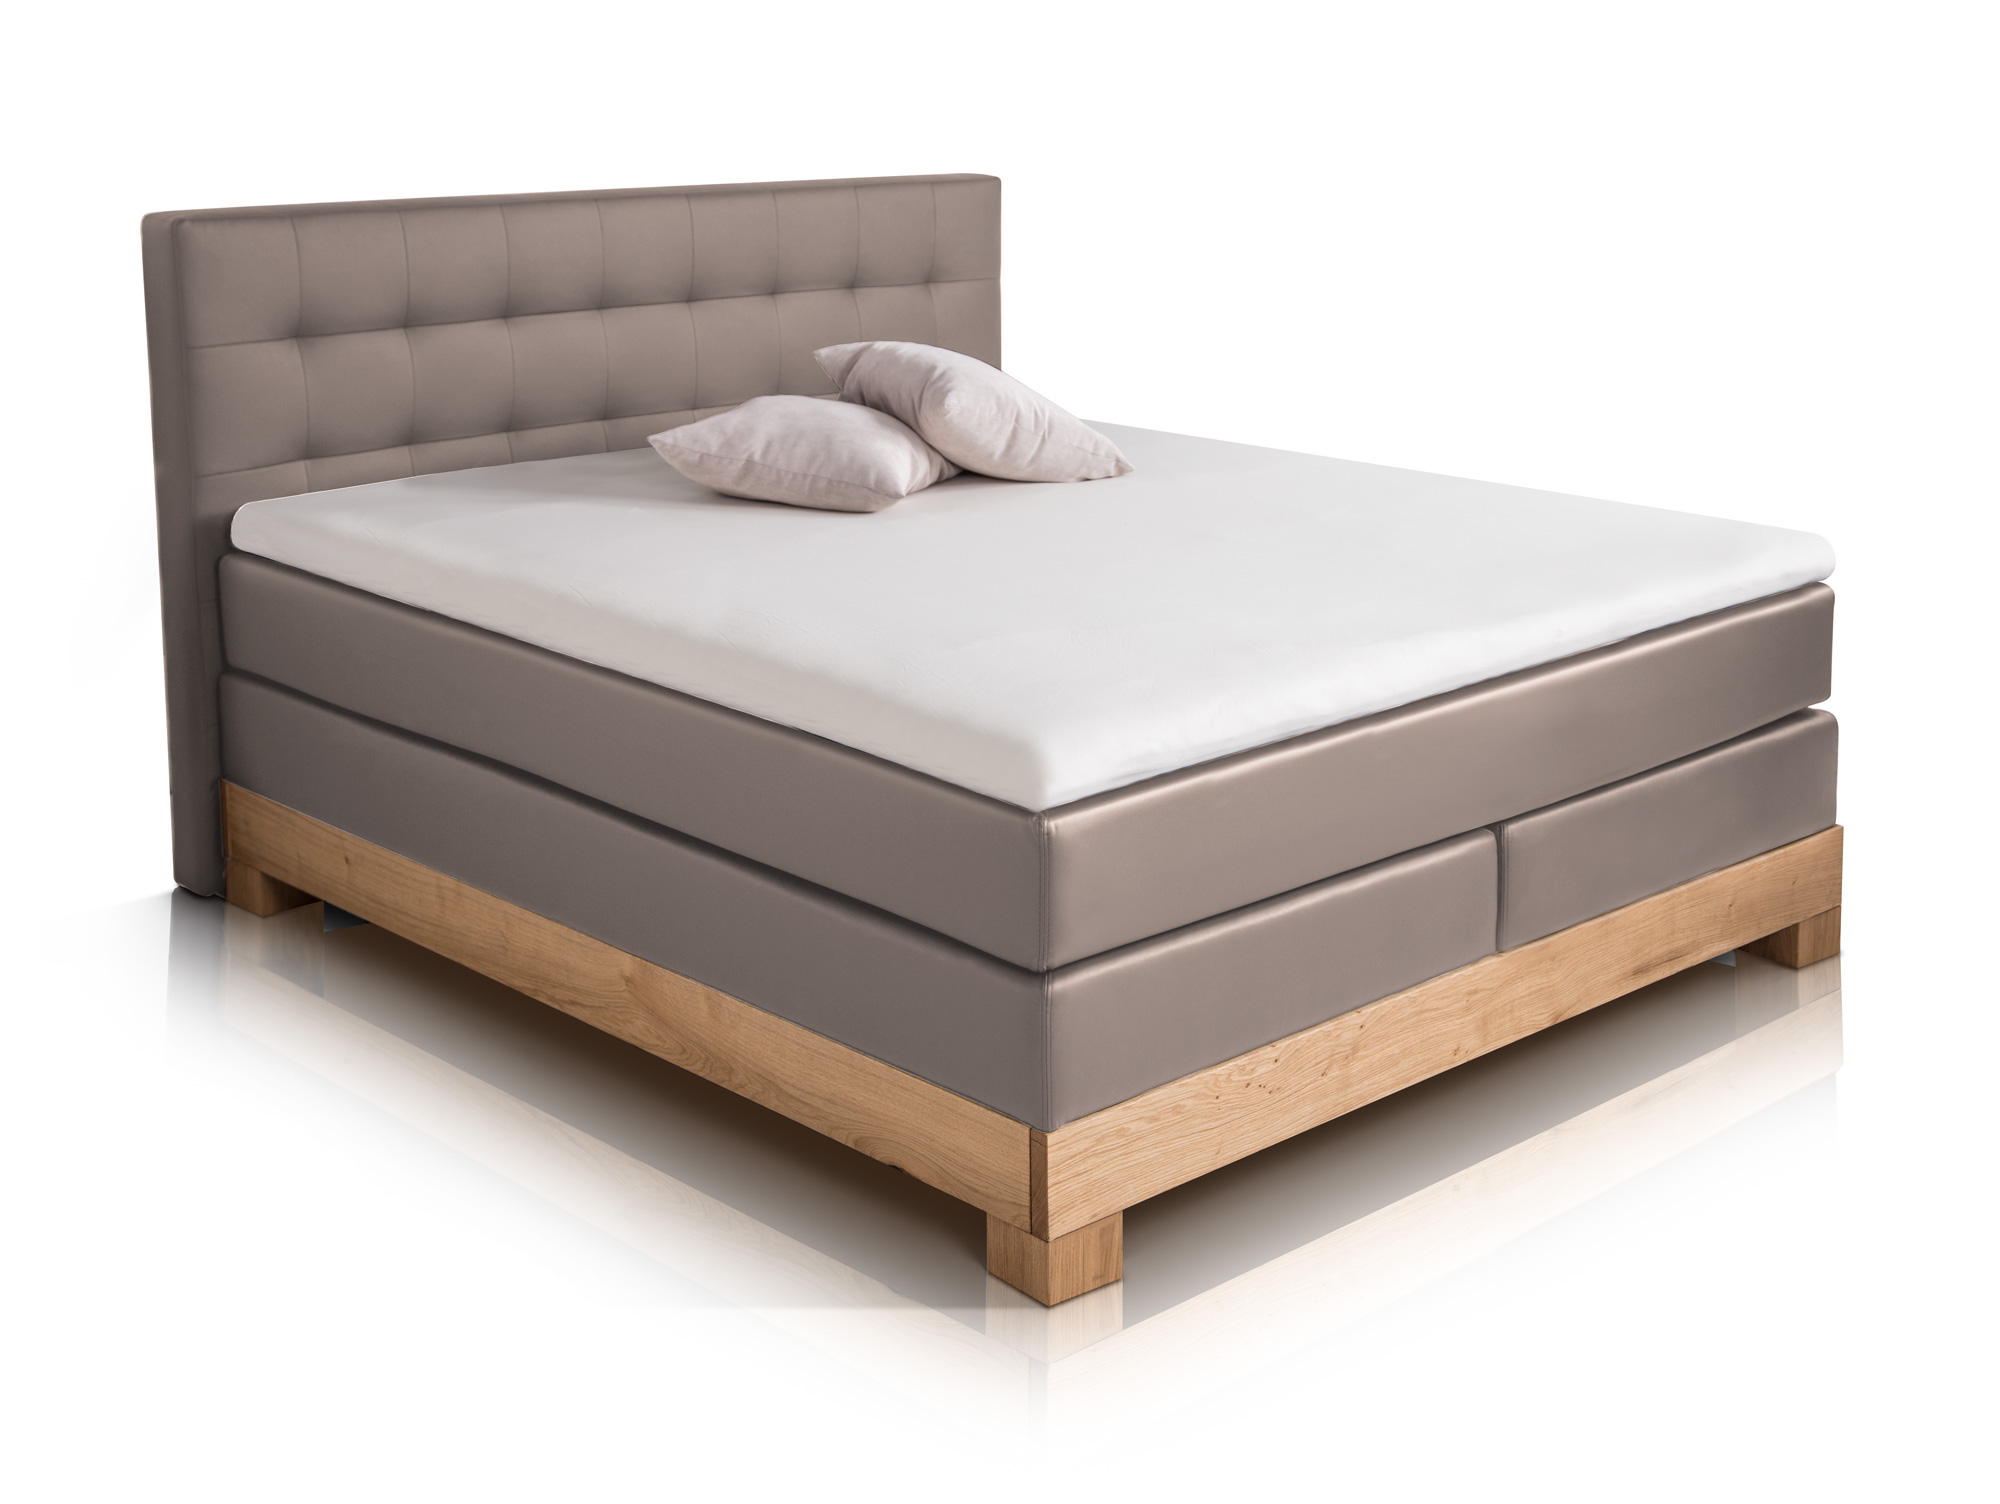 arche boxspringbett doppelbett boxspring bett boxbett 160x200 h2 h3 muddy buche ebay. Black Bedroom Furniture Sets. Home Design Ideas